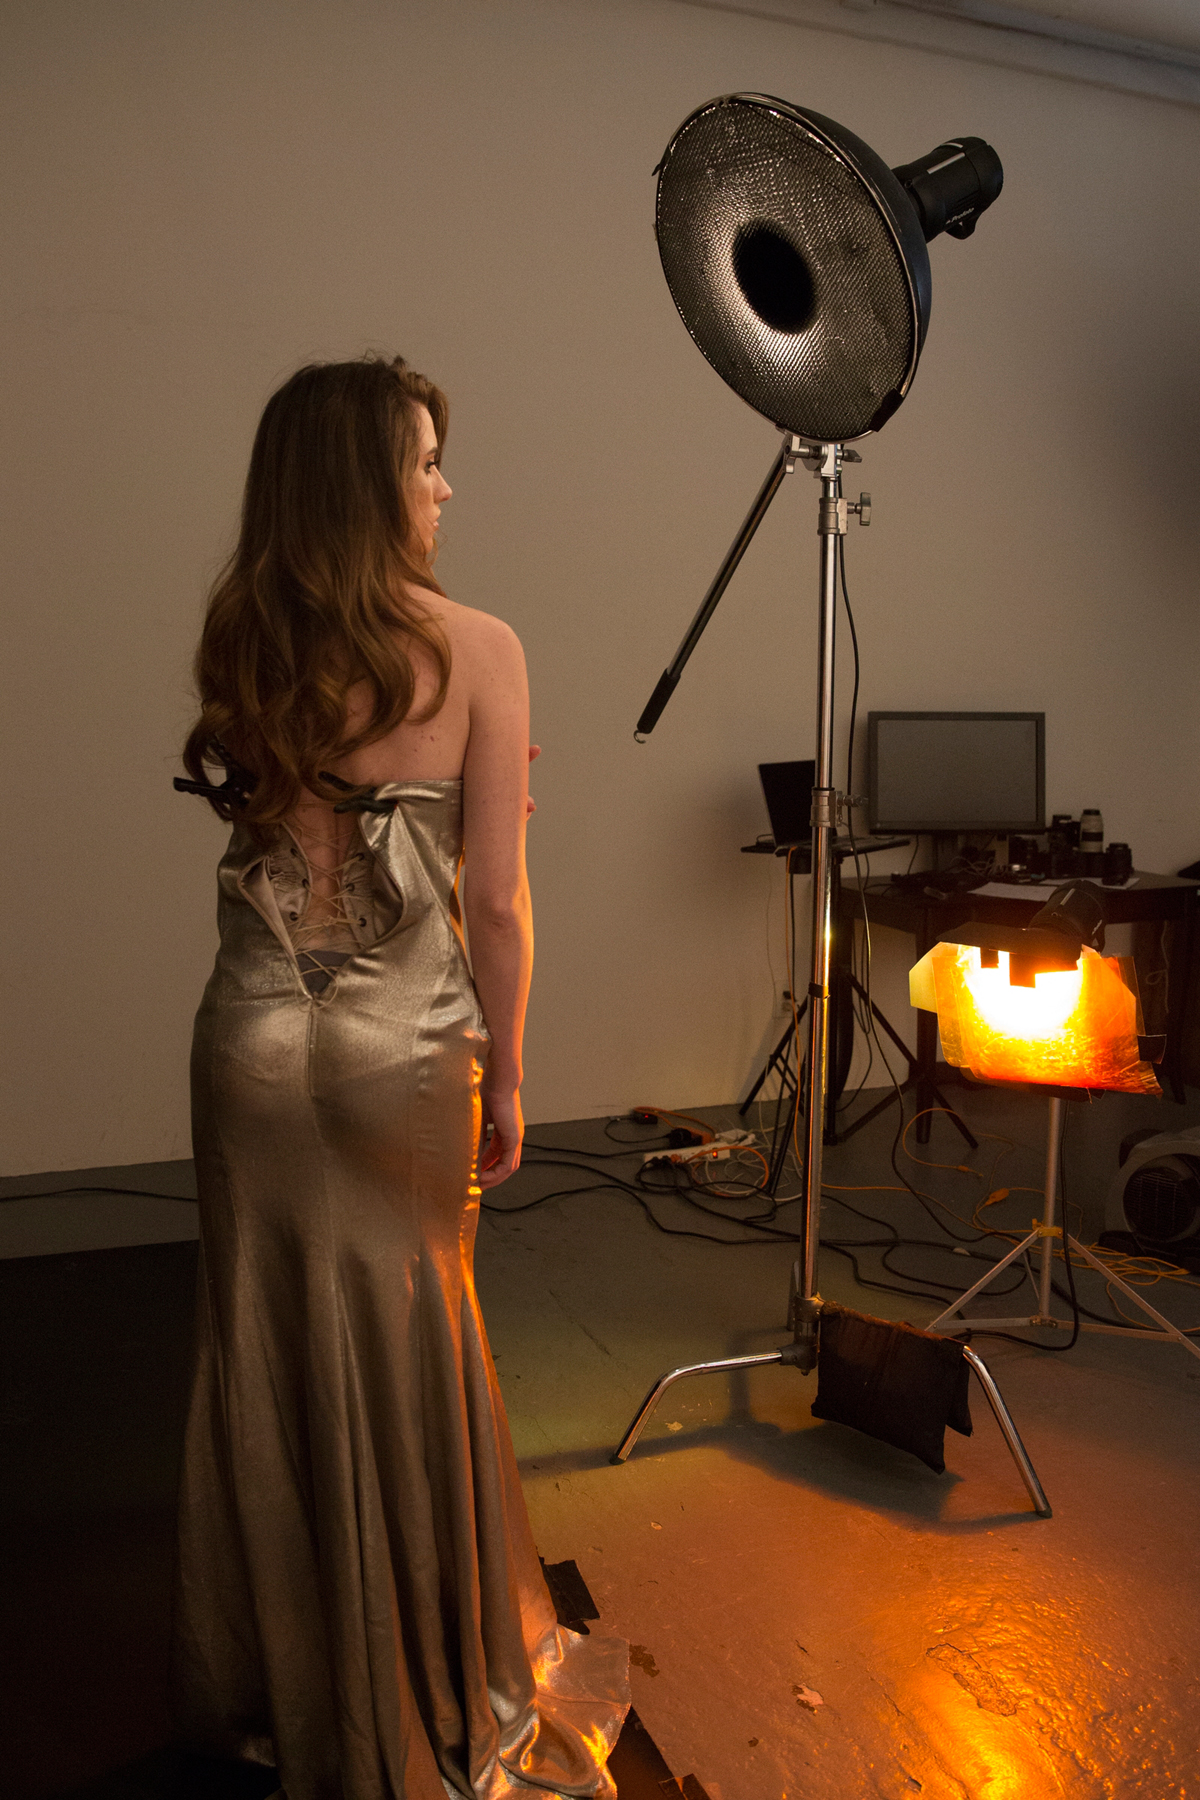 Lindsay Adler Dress On Fire Tutorial behind the scenes